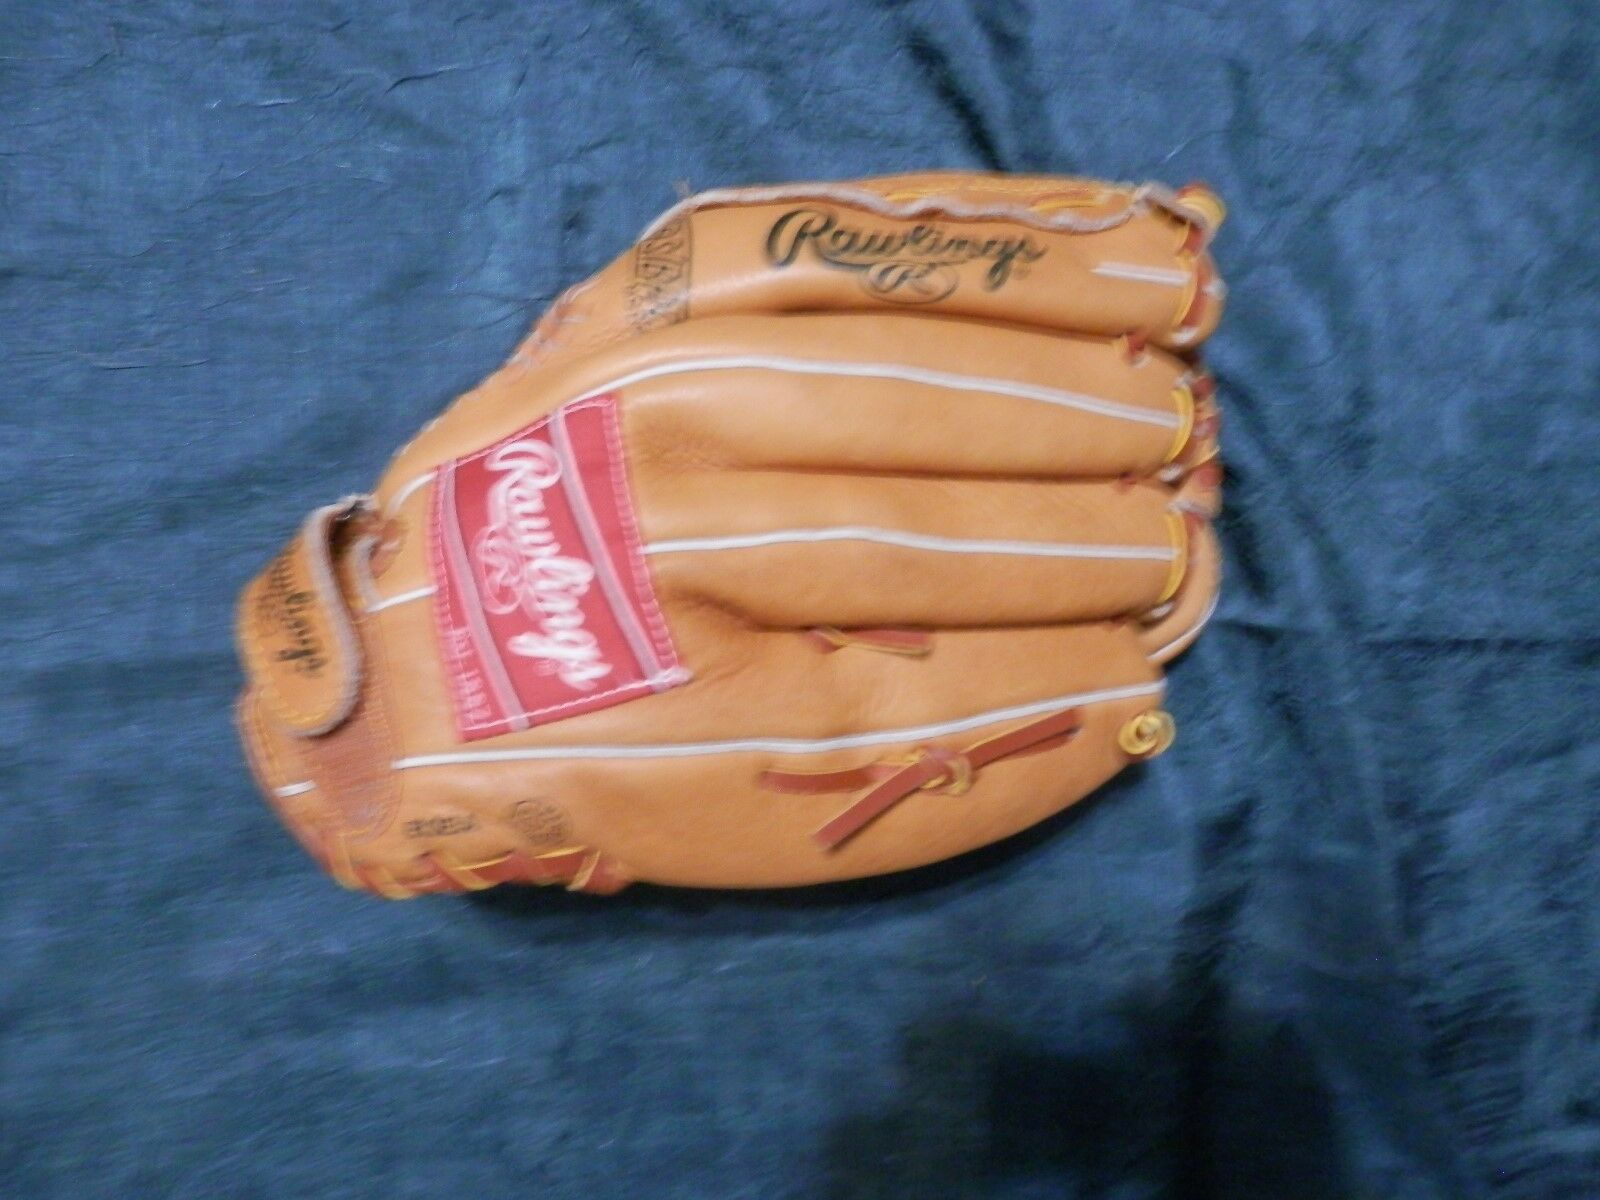 7e669b0e5e Rawlings rbg36 ken griffey jr. ball glove right handed oagsvx3597 ...